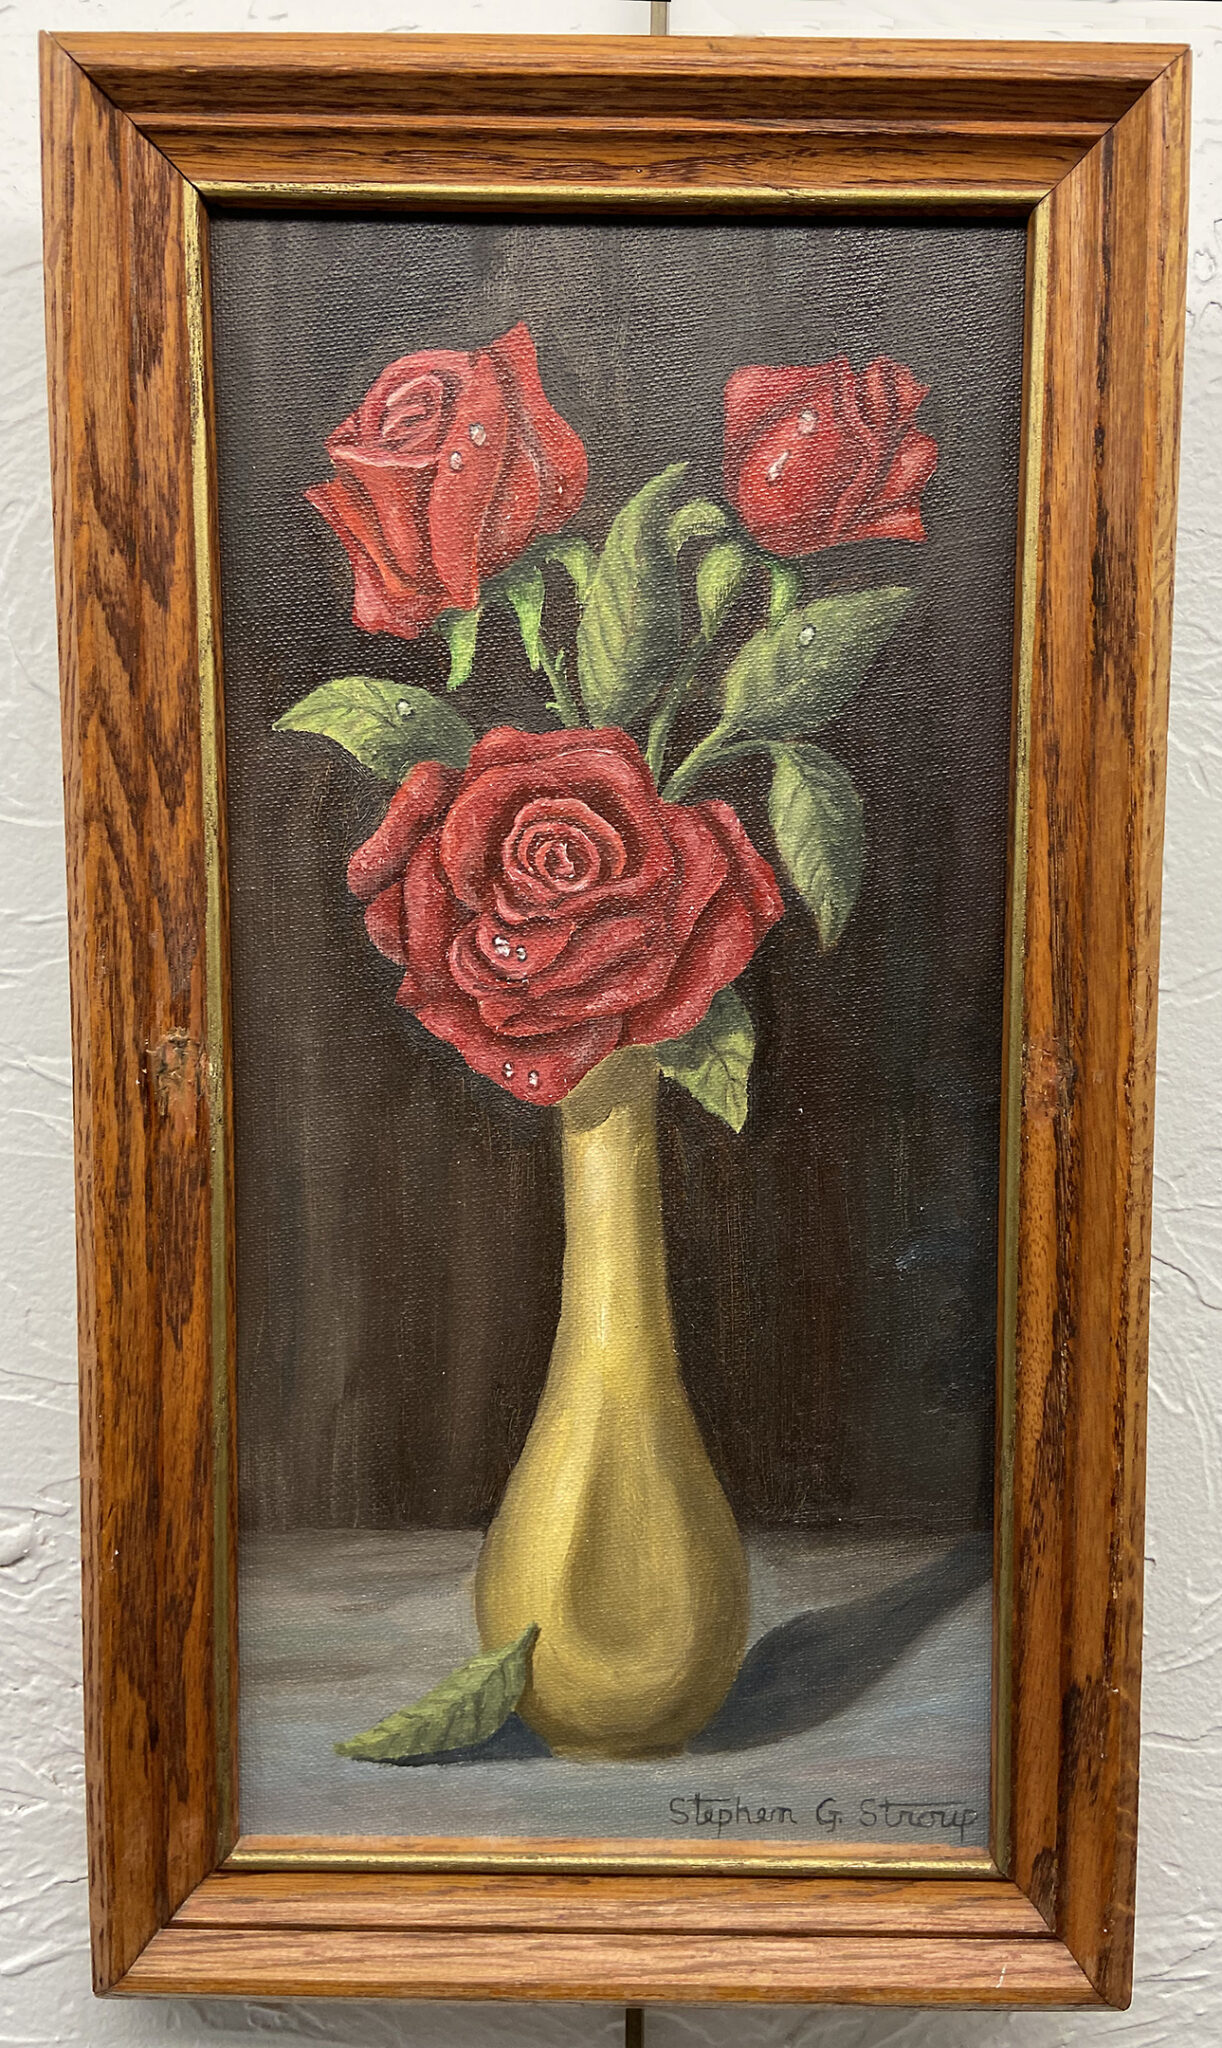 #10 Roses in a Vase, Steve Stroup, Oil (9 x 16), $30.00 suggested minimum bid  (94 meals)